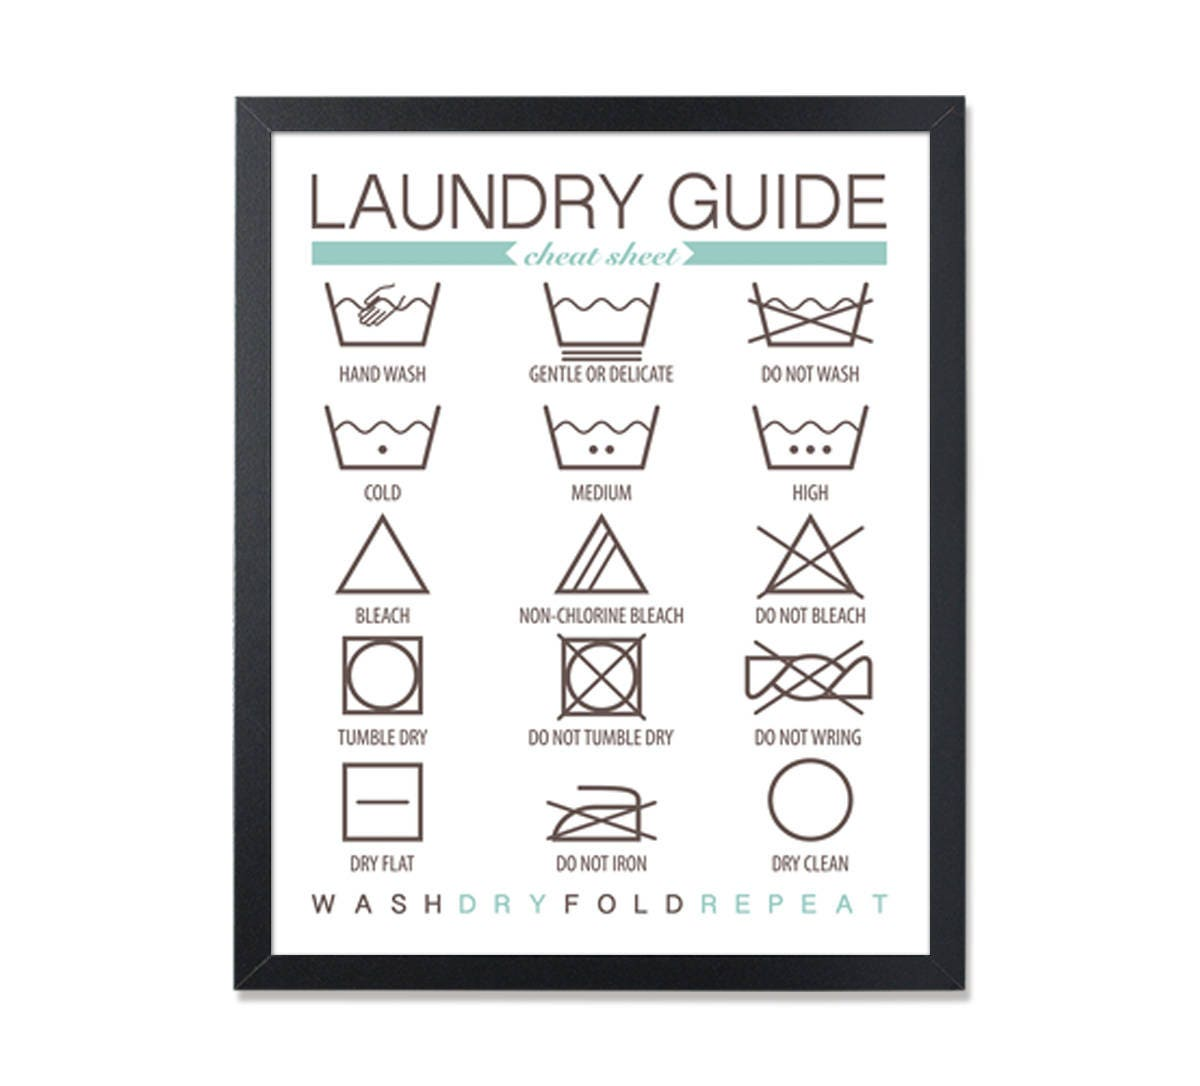 Laundry Symbols Wall Art Laundry Guide Wall Art Laundry Instructions Laundry Symbols